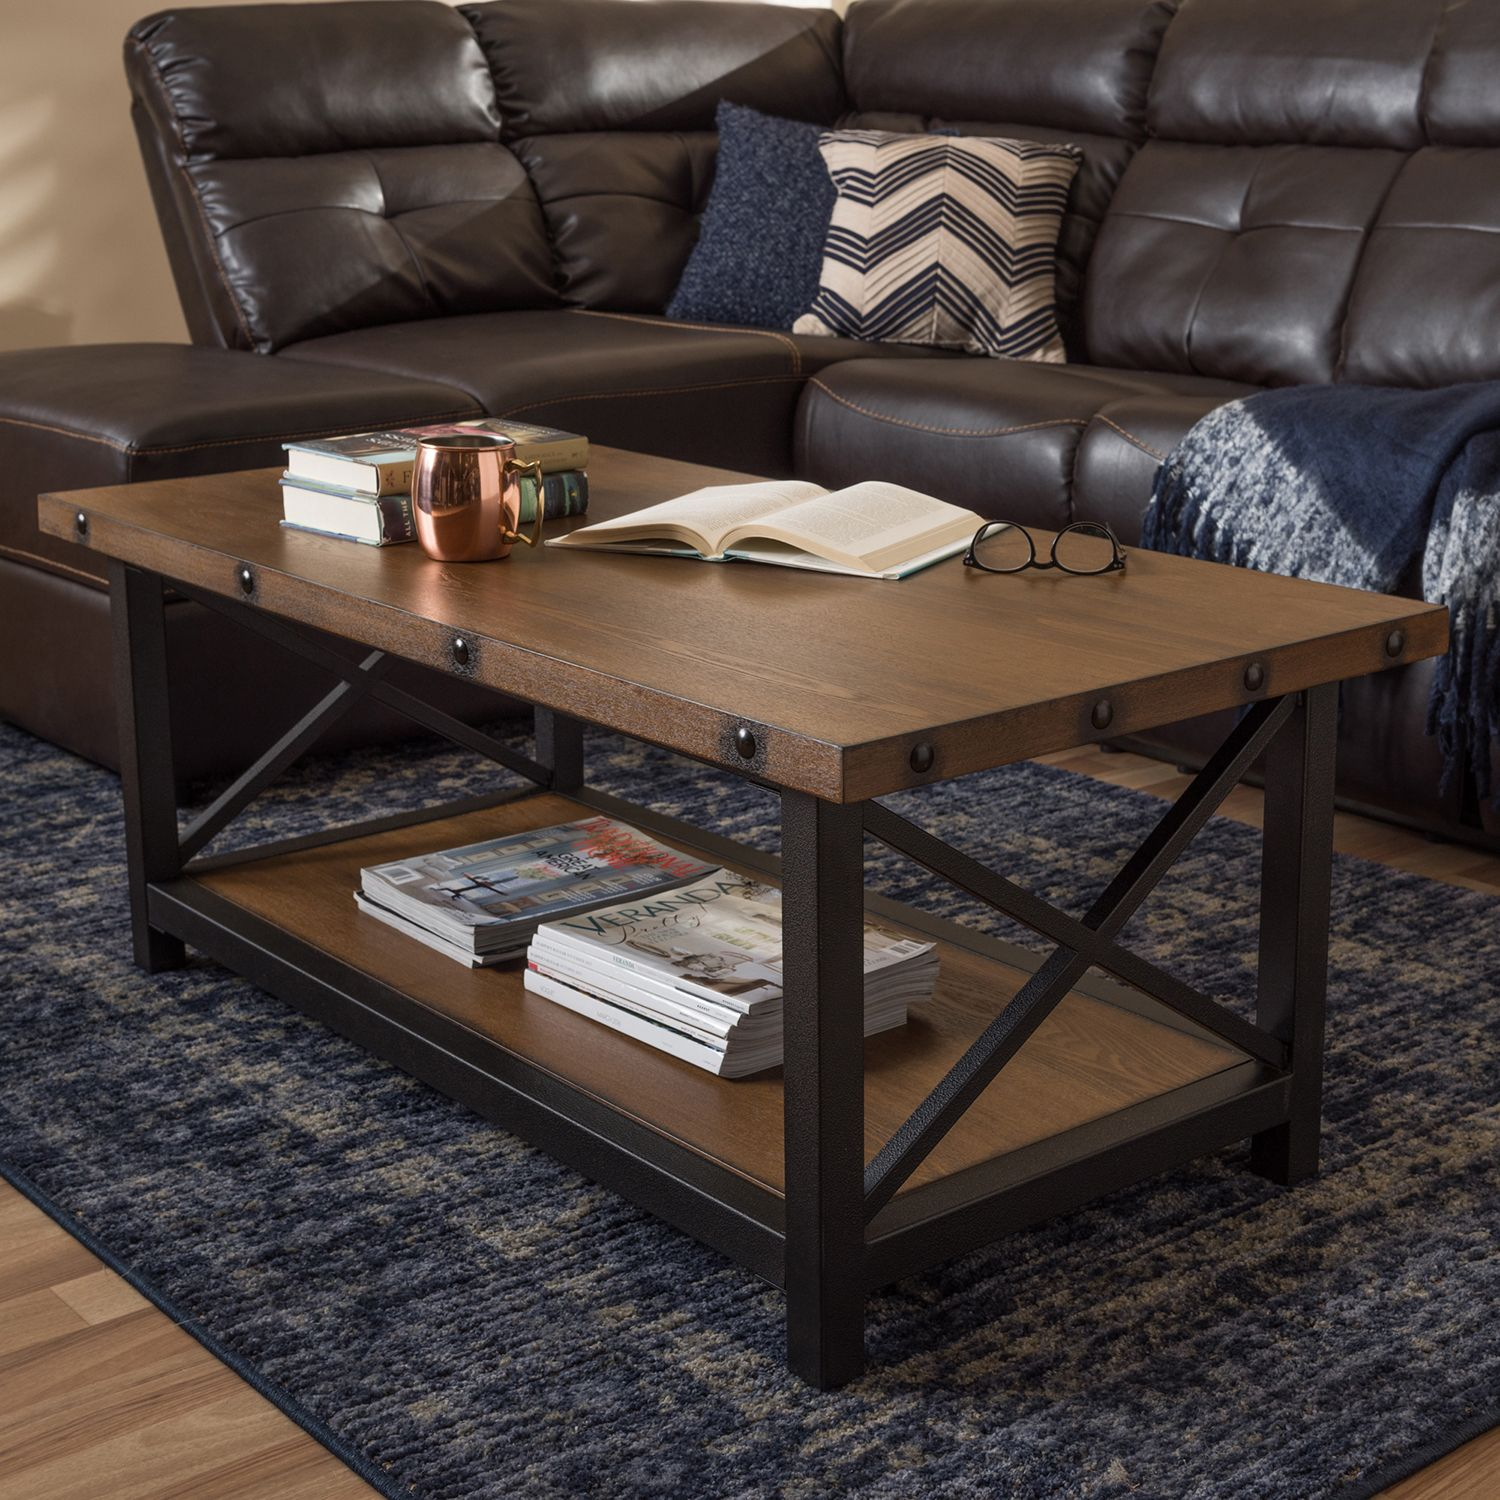 Baxton Studio Grayson Industrial Coffee Table. Regular